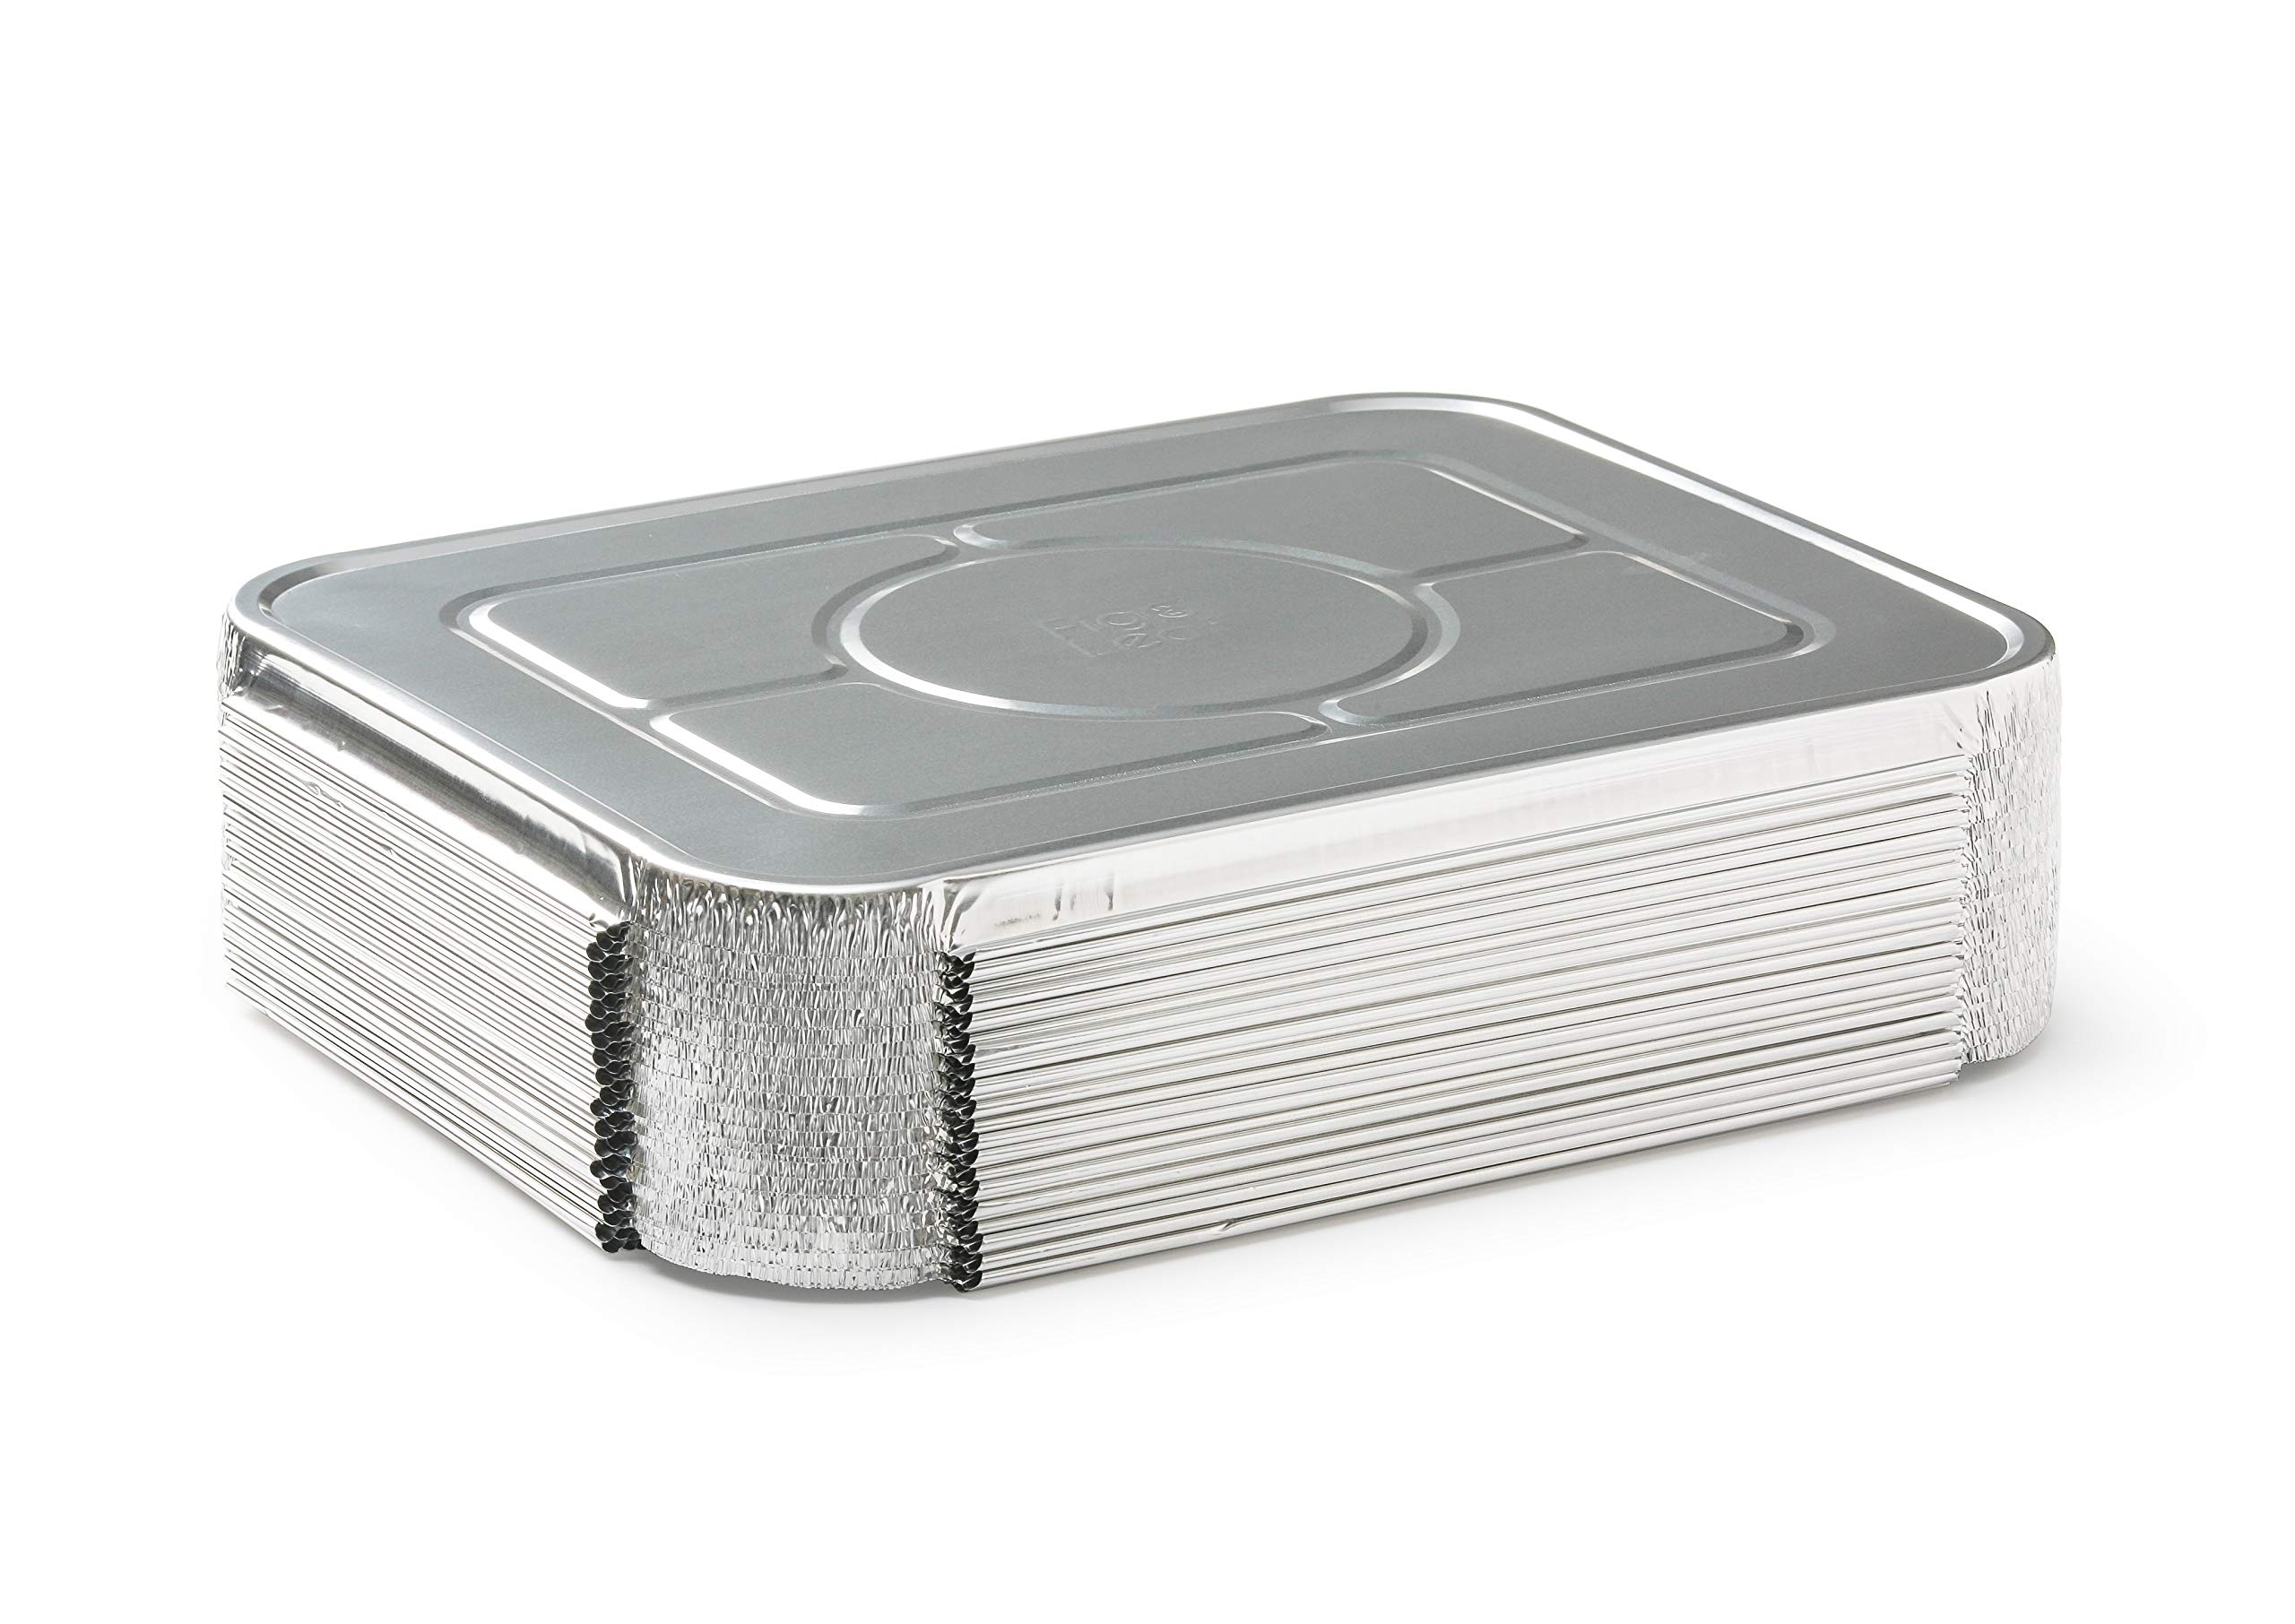 Fig & Leaf (35 Pack) Premium Lids for Chafing Pans 9'' x 13'' Half Deep Pans l Top Choice Disposable Aluminum Foil Tin Pan Lid Perfect for Roasting Potluck Catering Party BBQ Baking Cakes Pies by Fig & Leaf